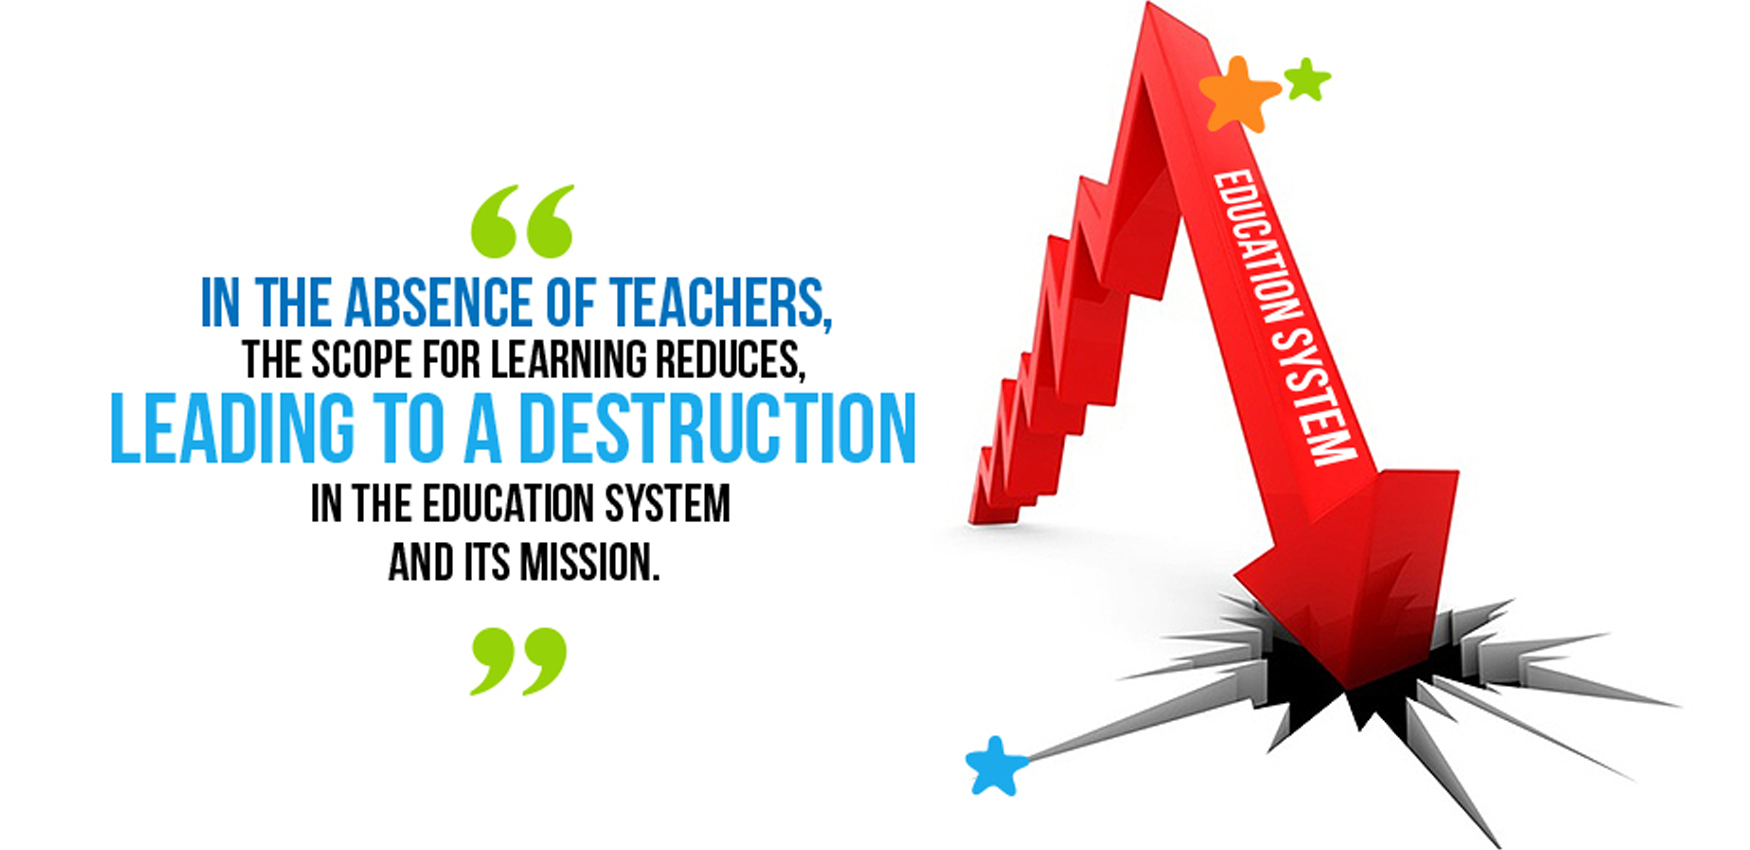 In the absence of effective teachers